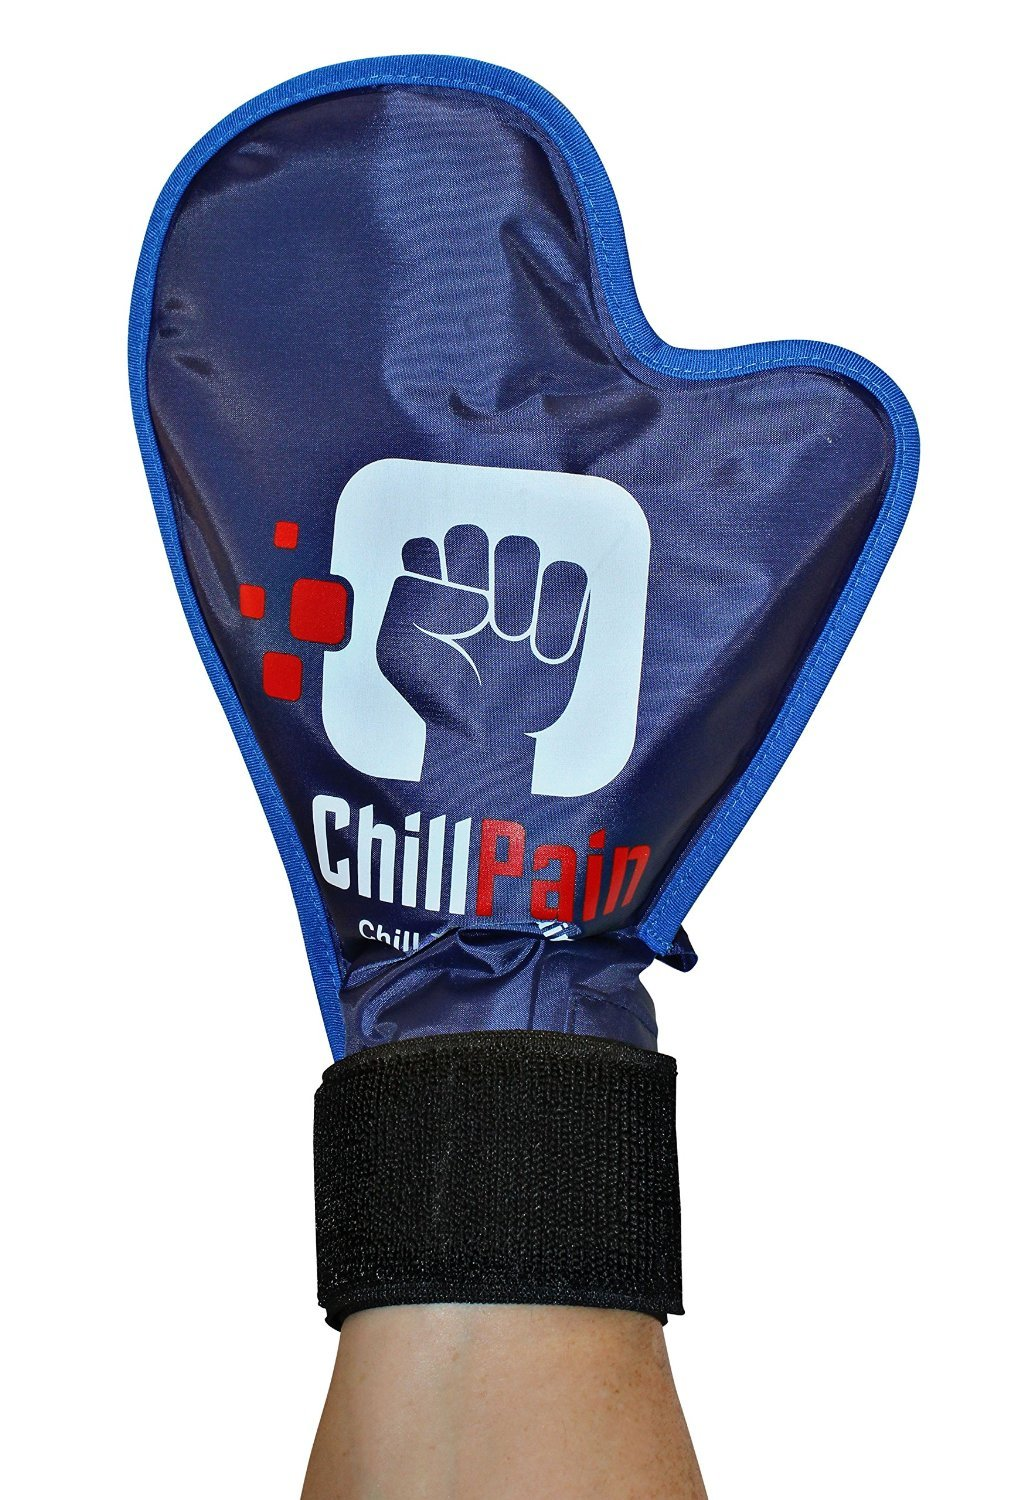 Cold Therapy Reusable Ice Pack Glove For Sore Hands By ChillPain. ChillPain Ice Pack Gloves are Exclusively Designed for Women and Men With Small to Medium Size hands (1 Glove) by ChillPain